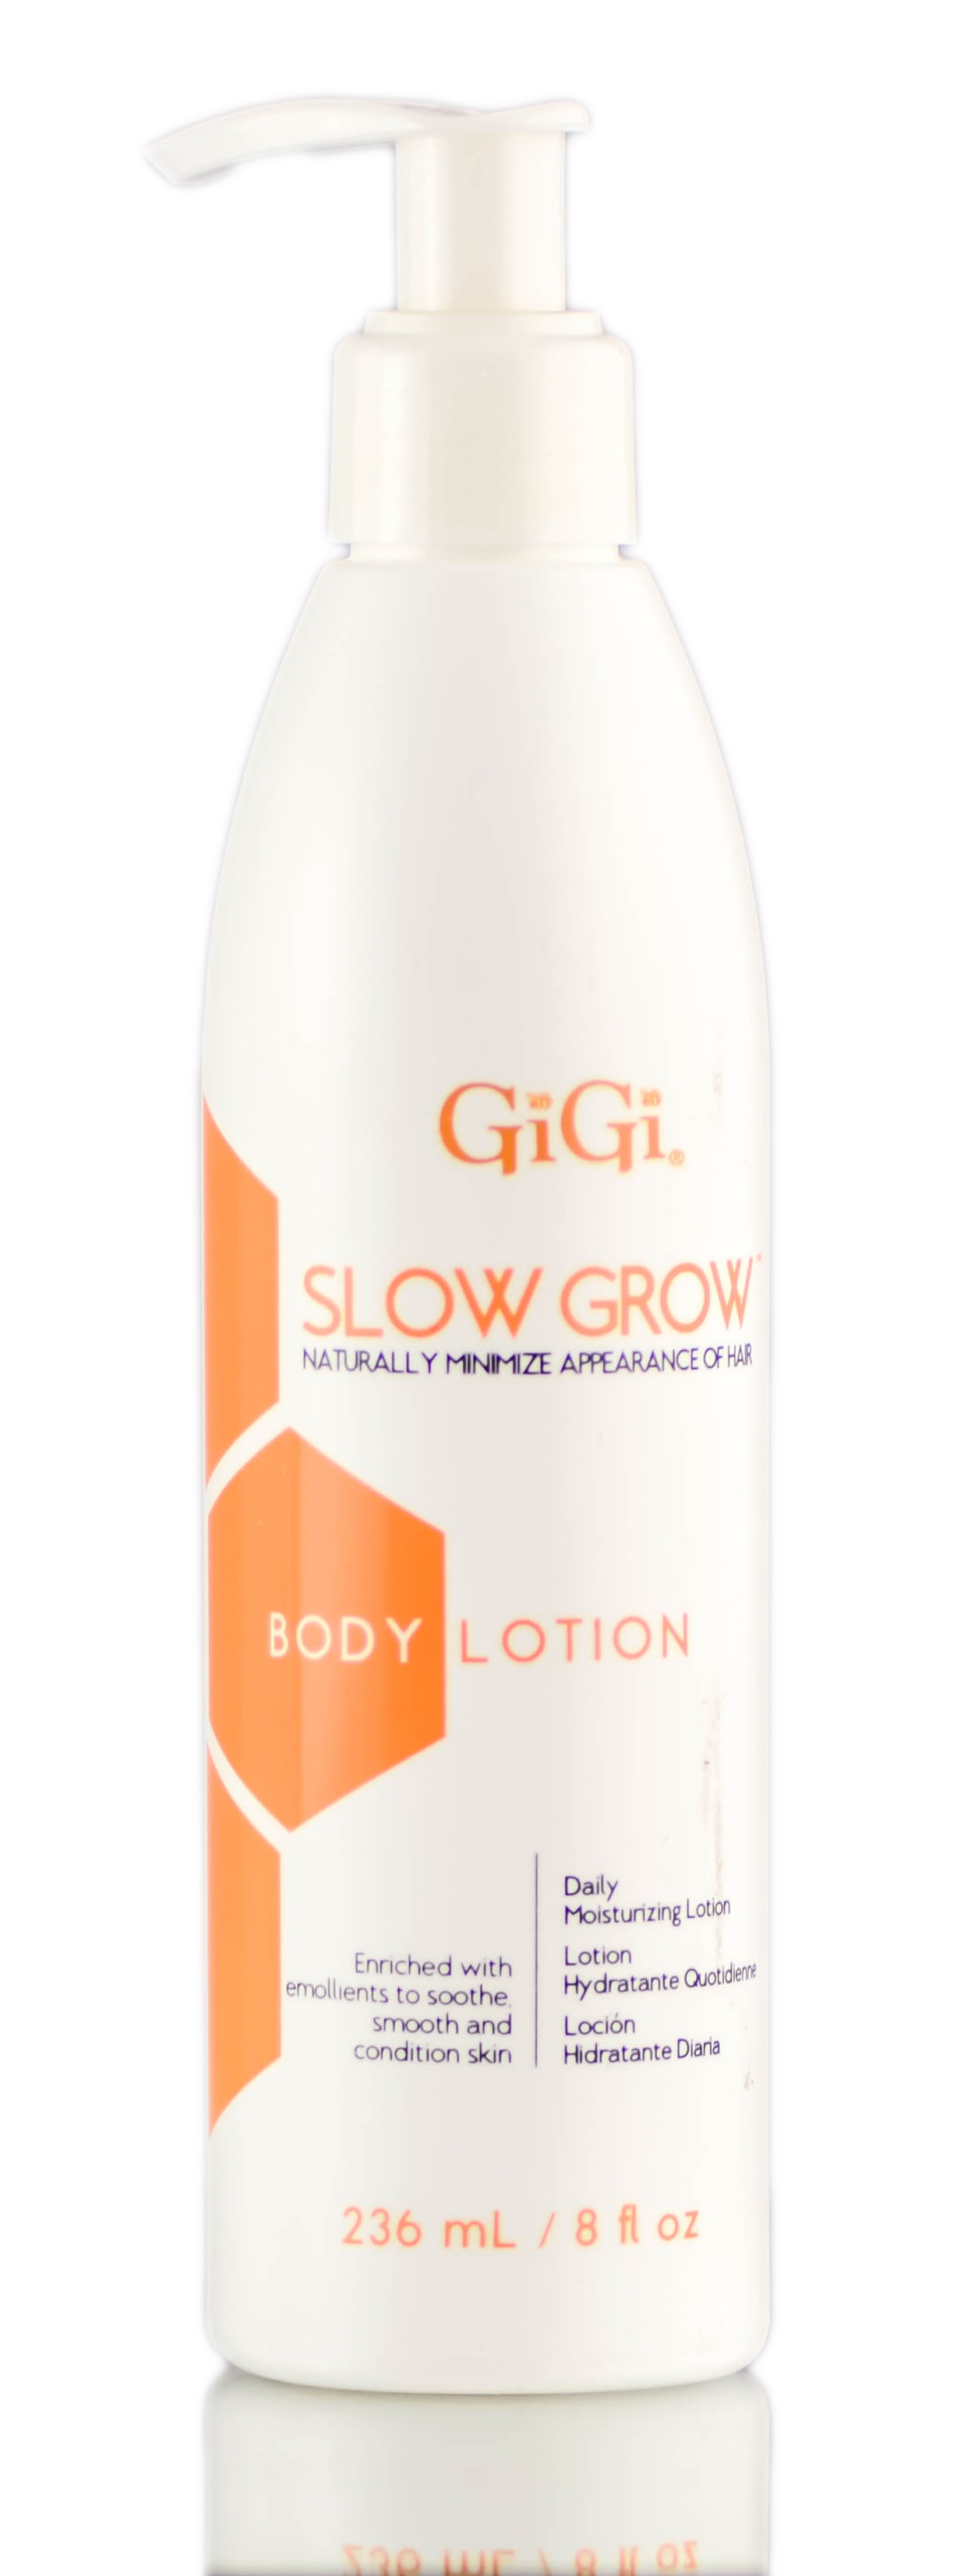 Gigi Slow Grow Body Lotion 073930073406